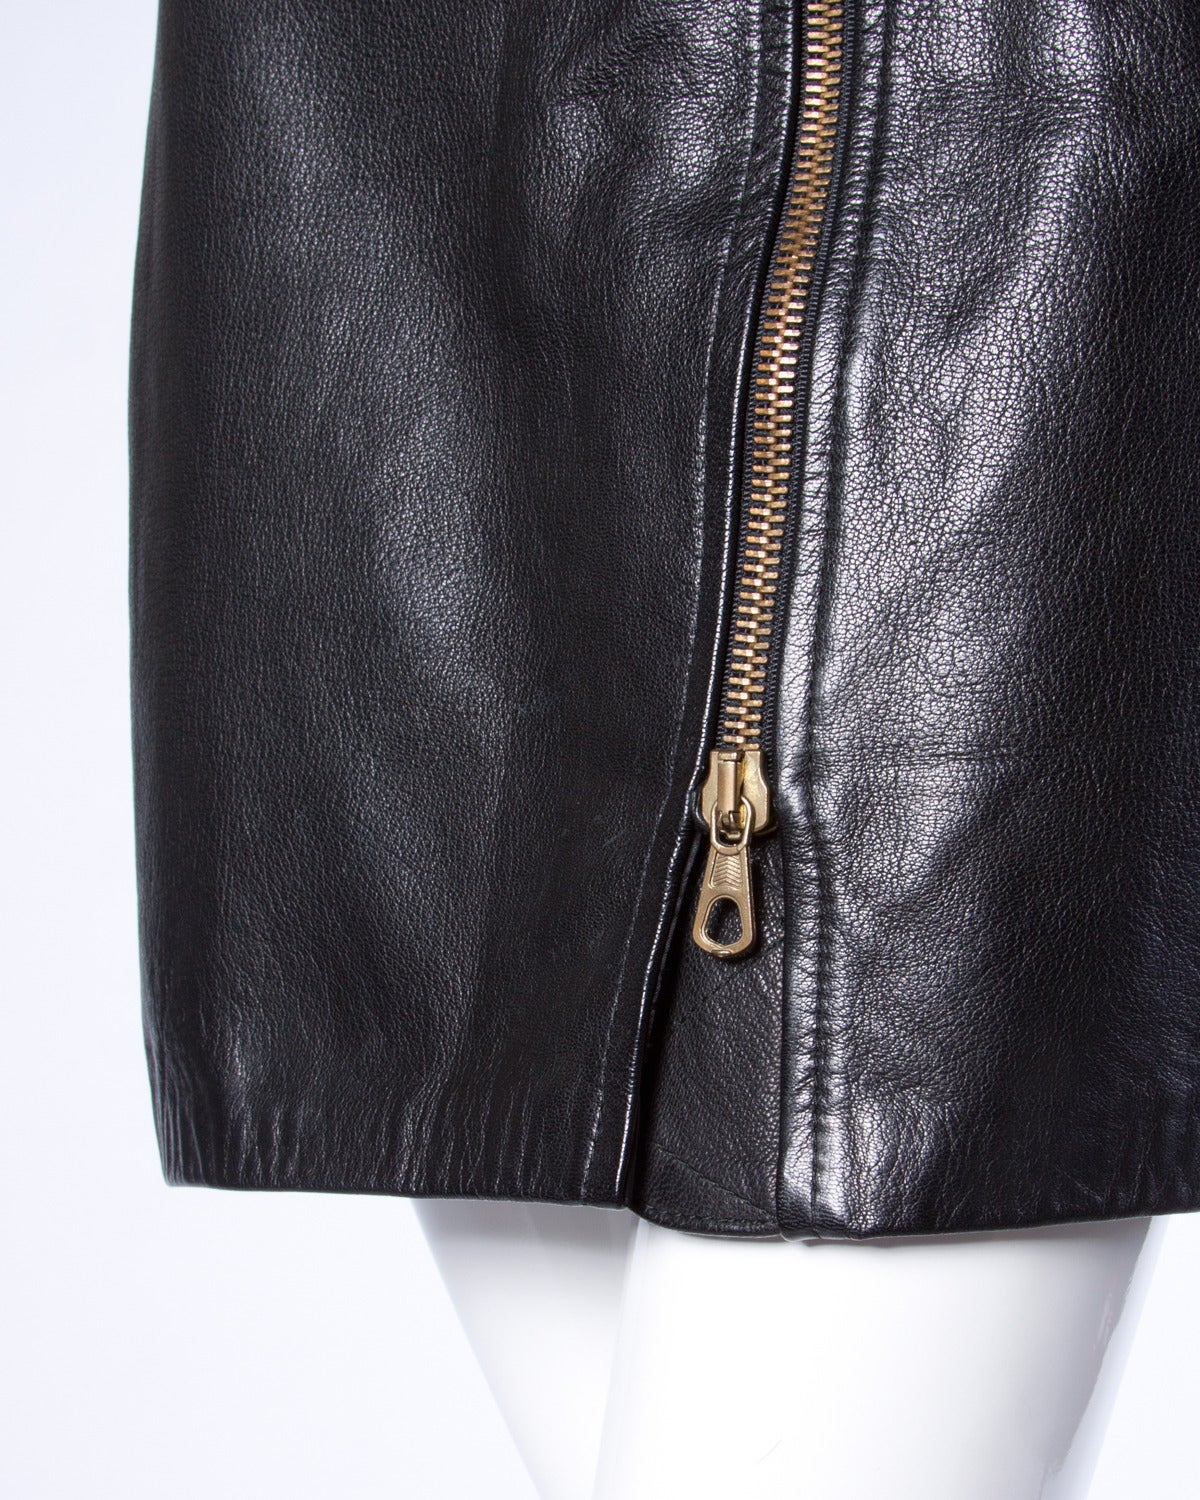 Moschino Vintage 1990s 90s Black Leather Skirt with Heart Belt Buckle For Sale 2